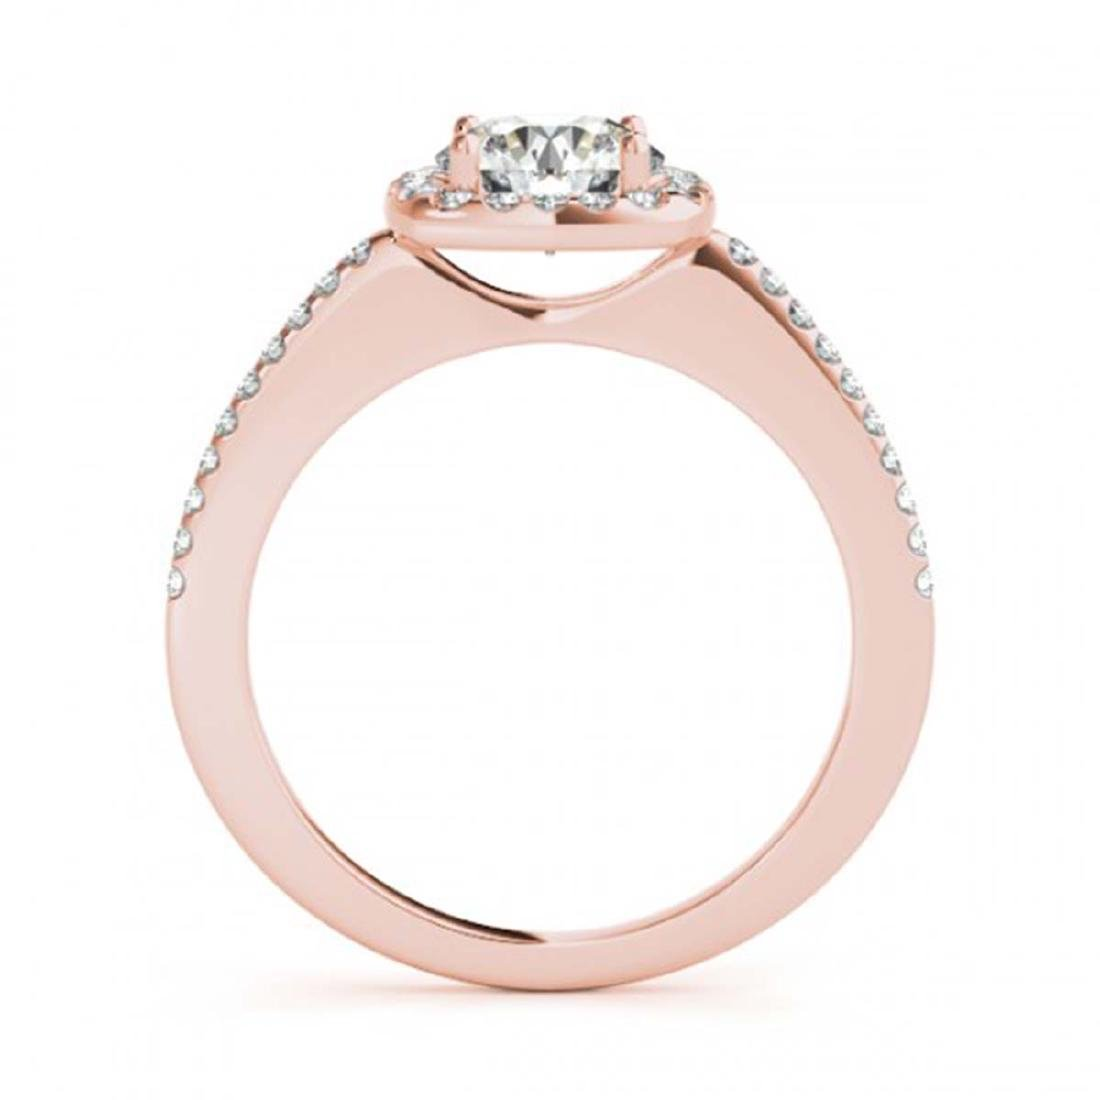 1.01 ctw VS/SI Diamond Solitaire Halo Ring 14K Rose - 2